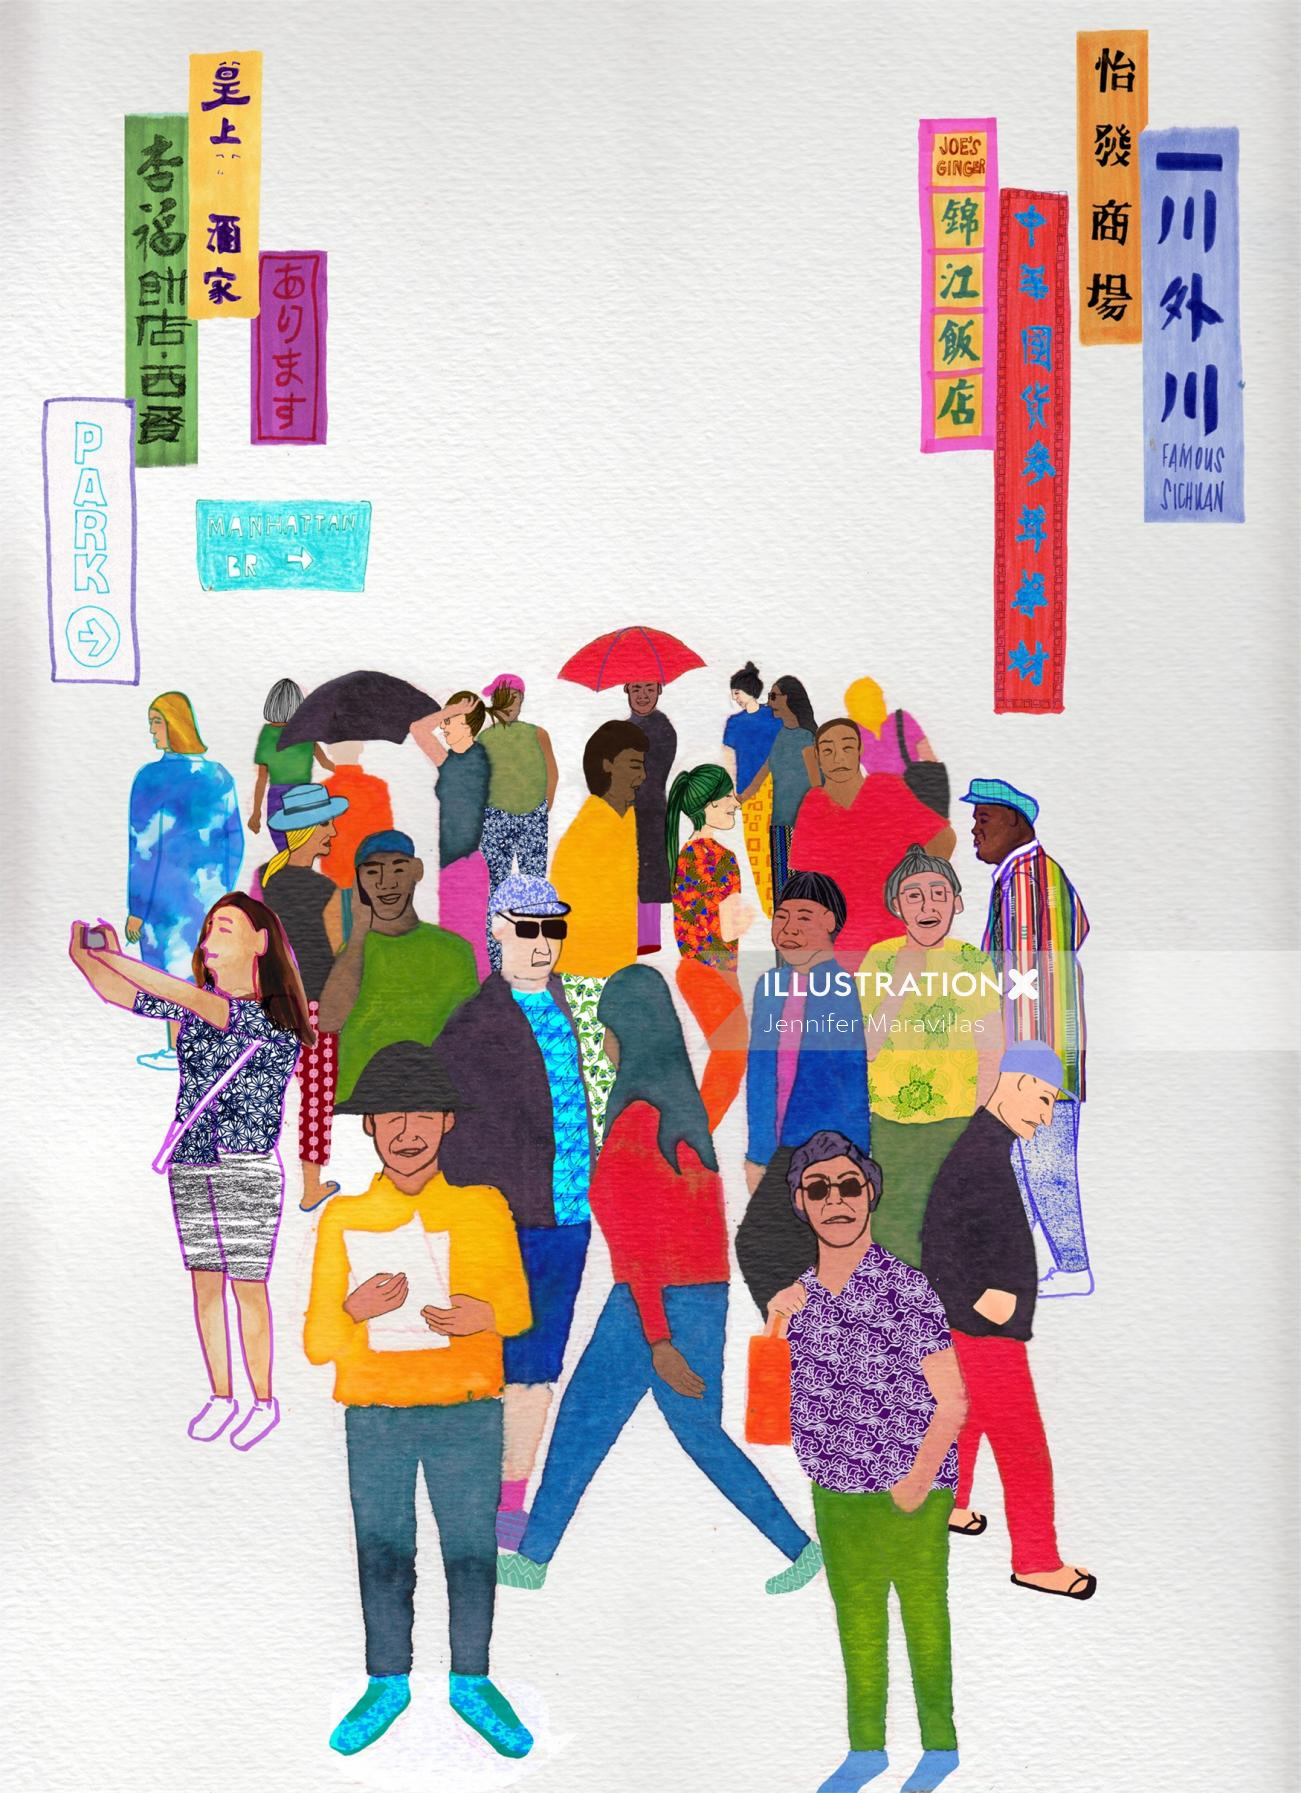 An illustration of people